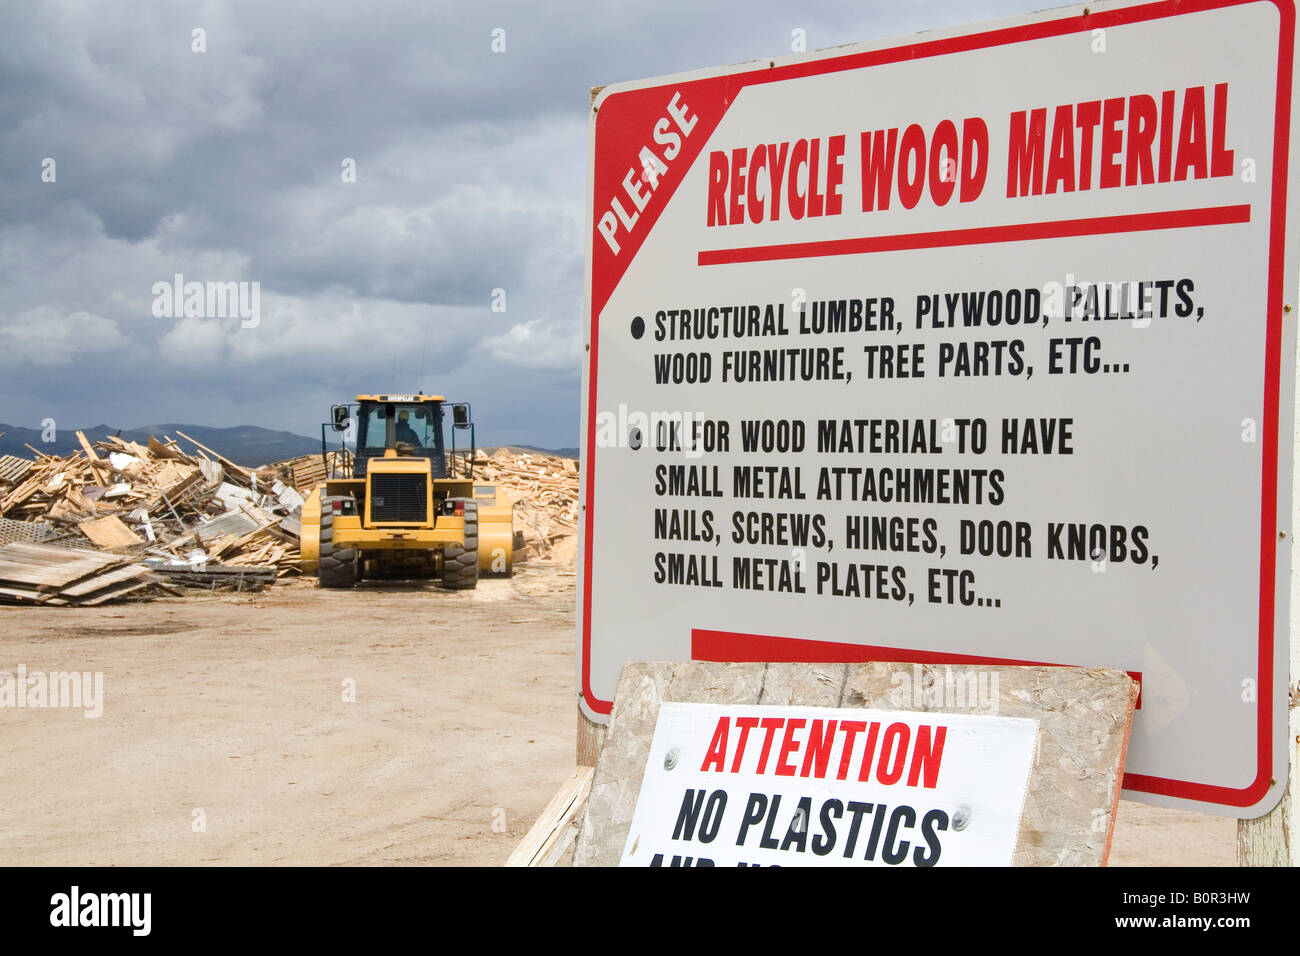 Wood material recycling at the Ada County Landfill in Boise Idaho - Stock Image